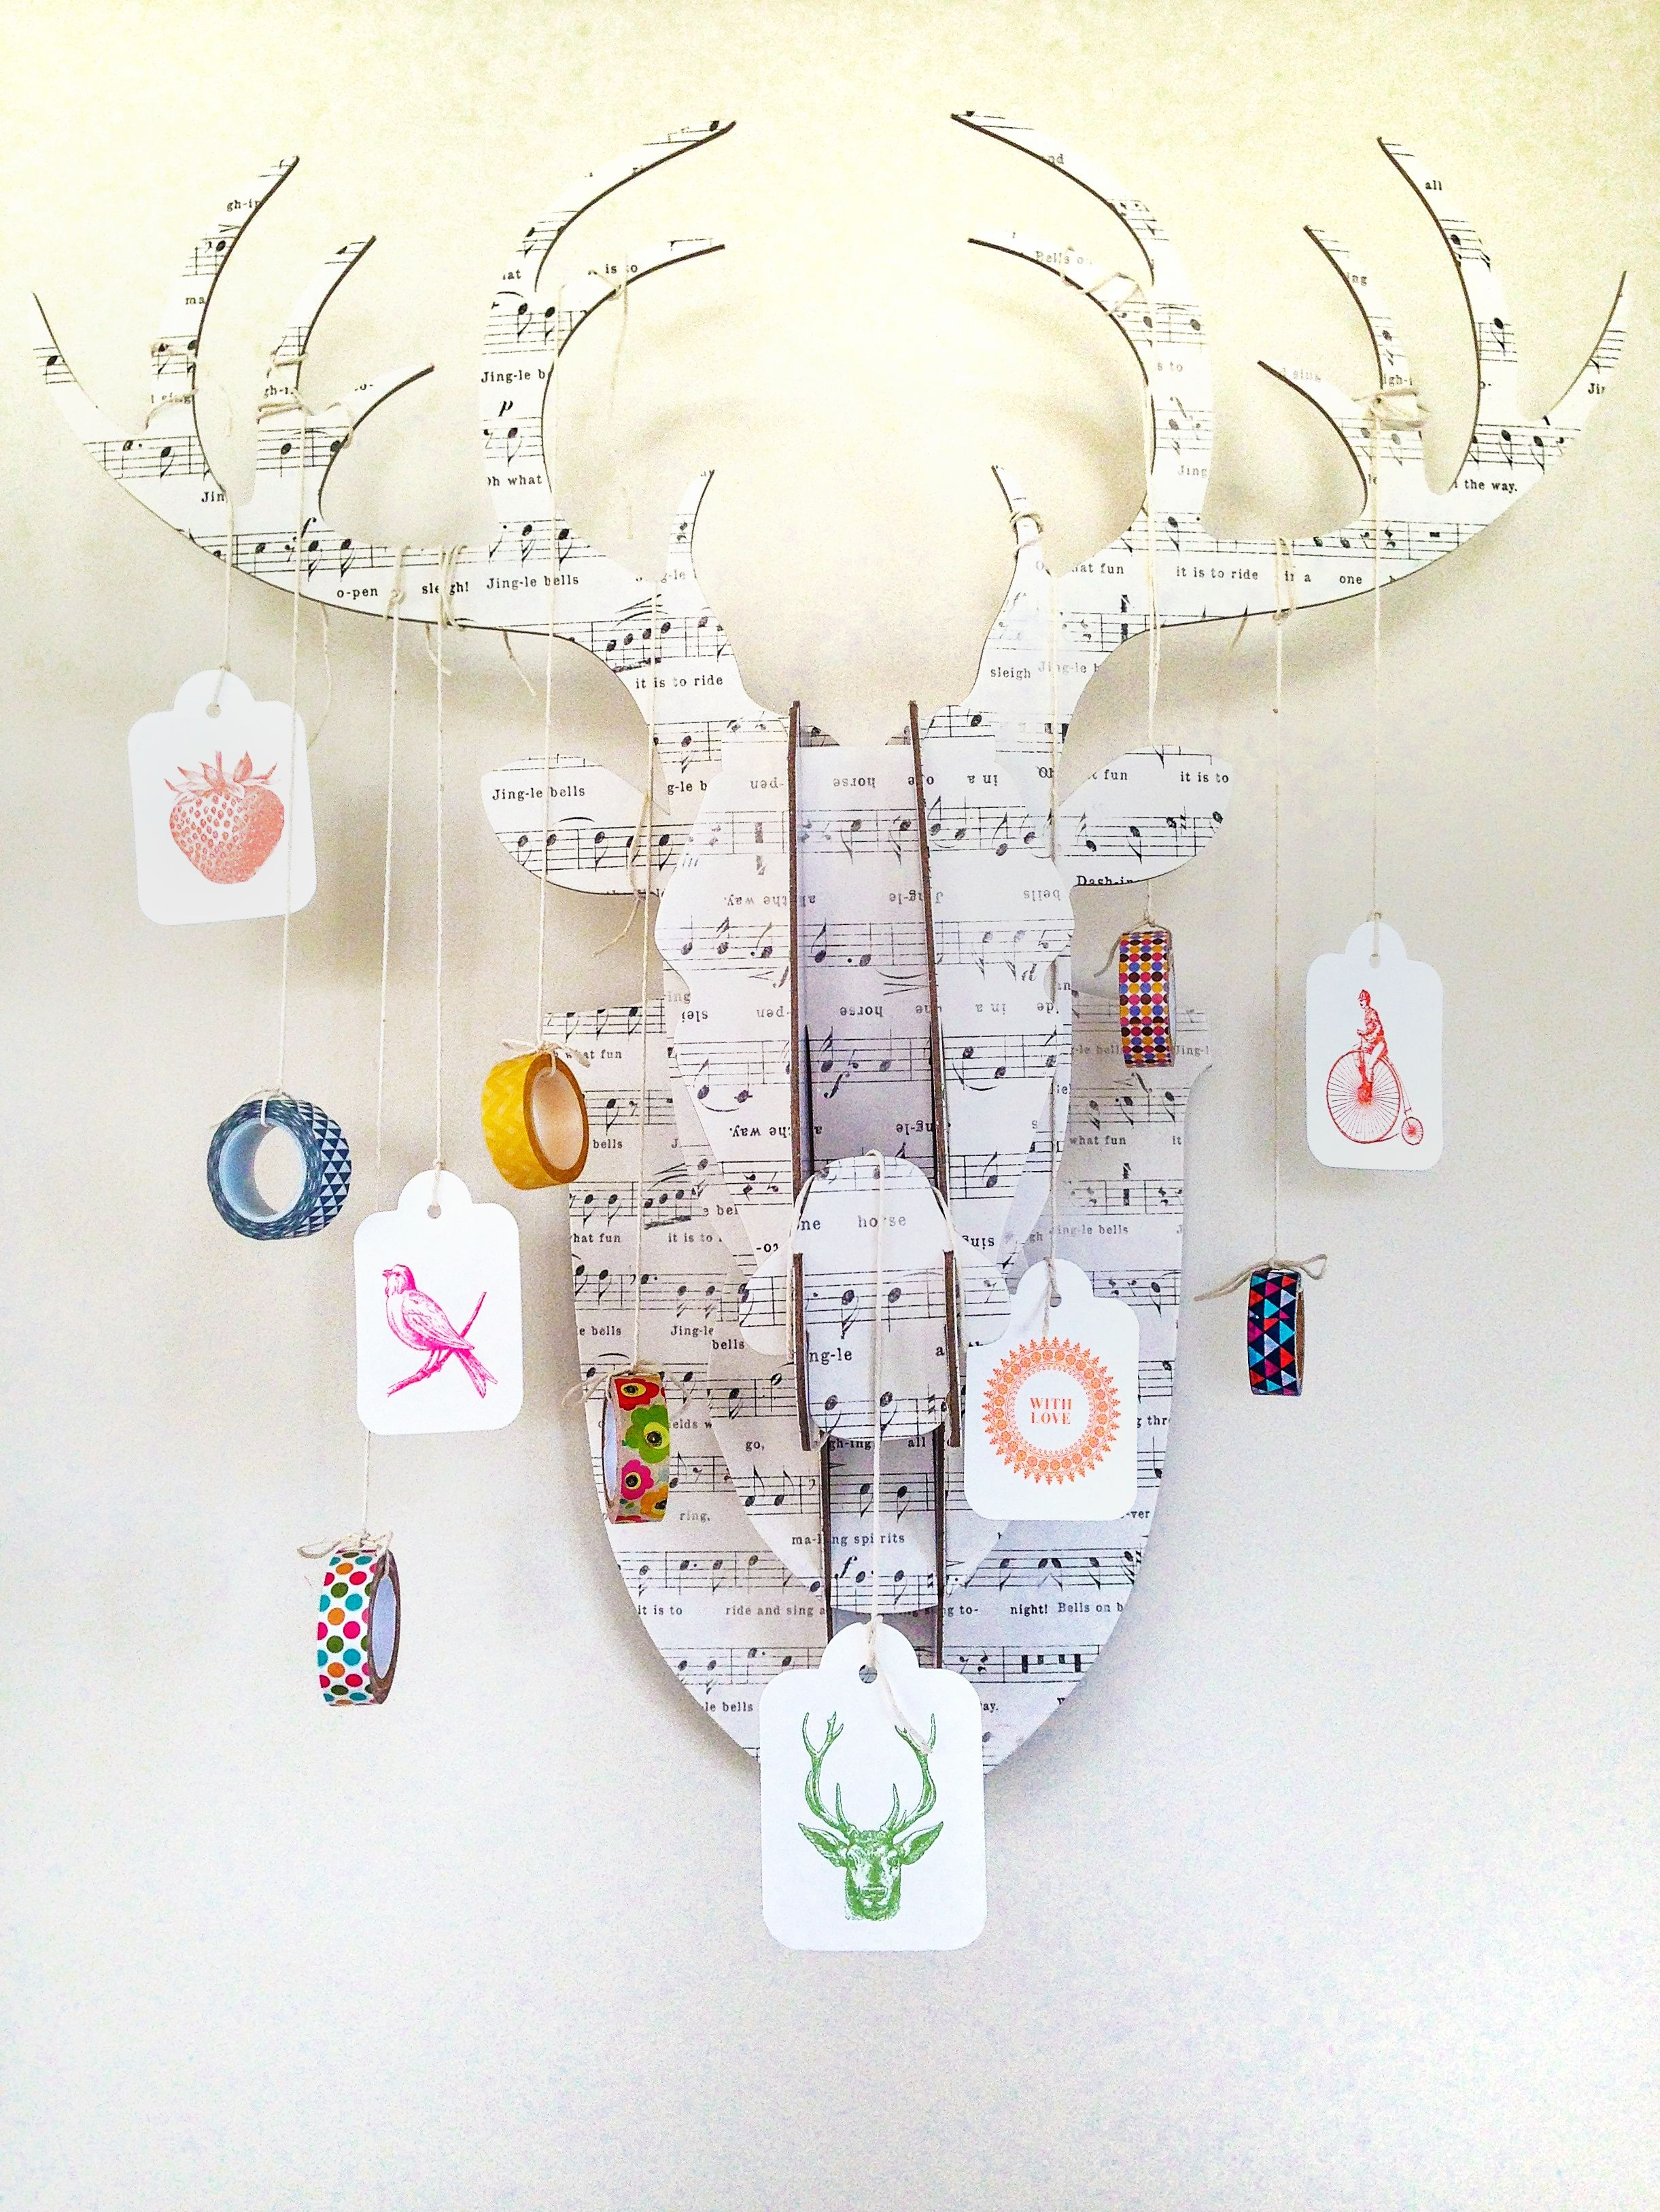 7 vignettes, dy 3.. Hanging, washi tape just handing around for fun,, deer, antlers